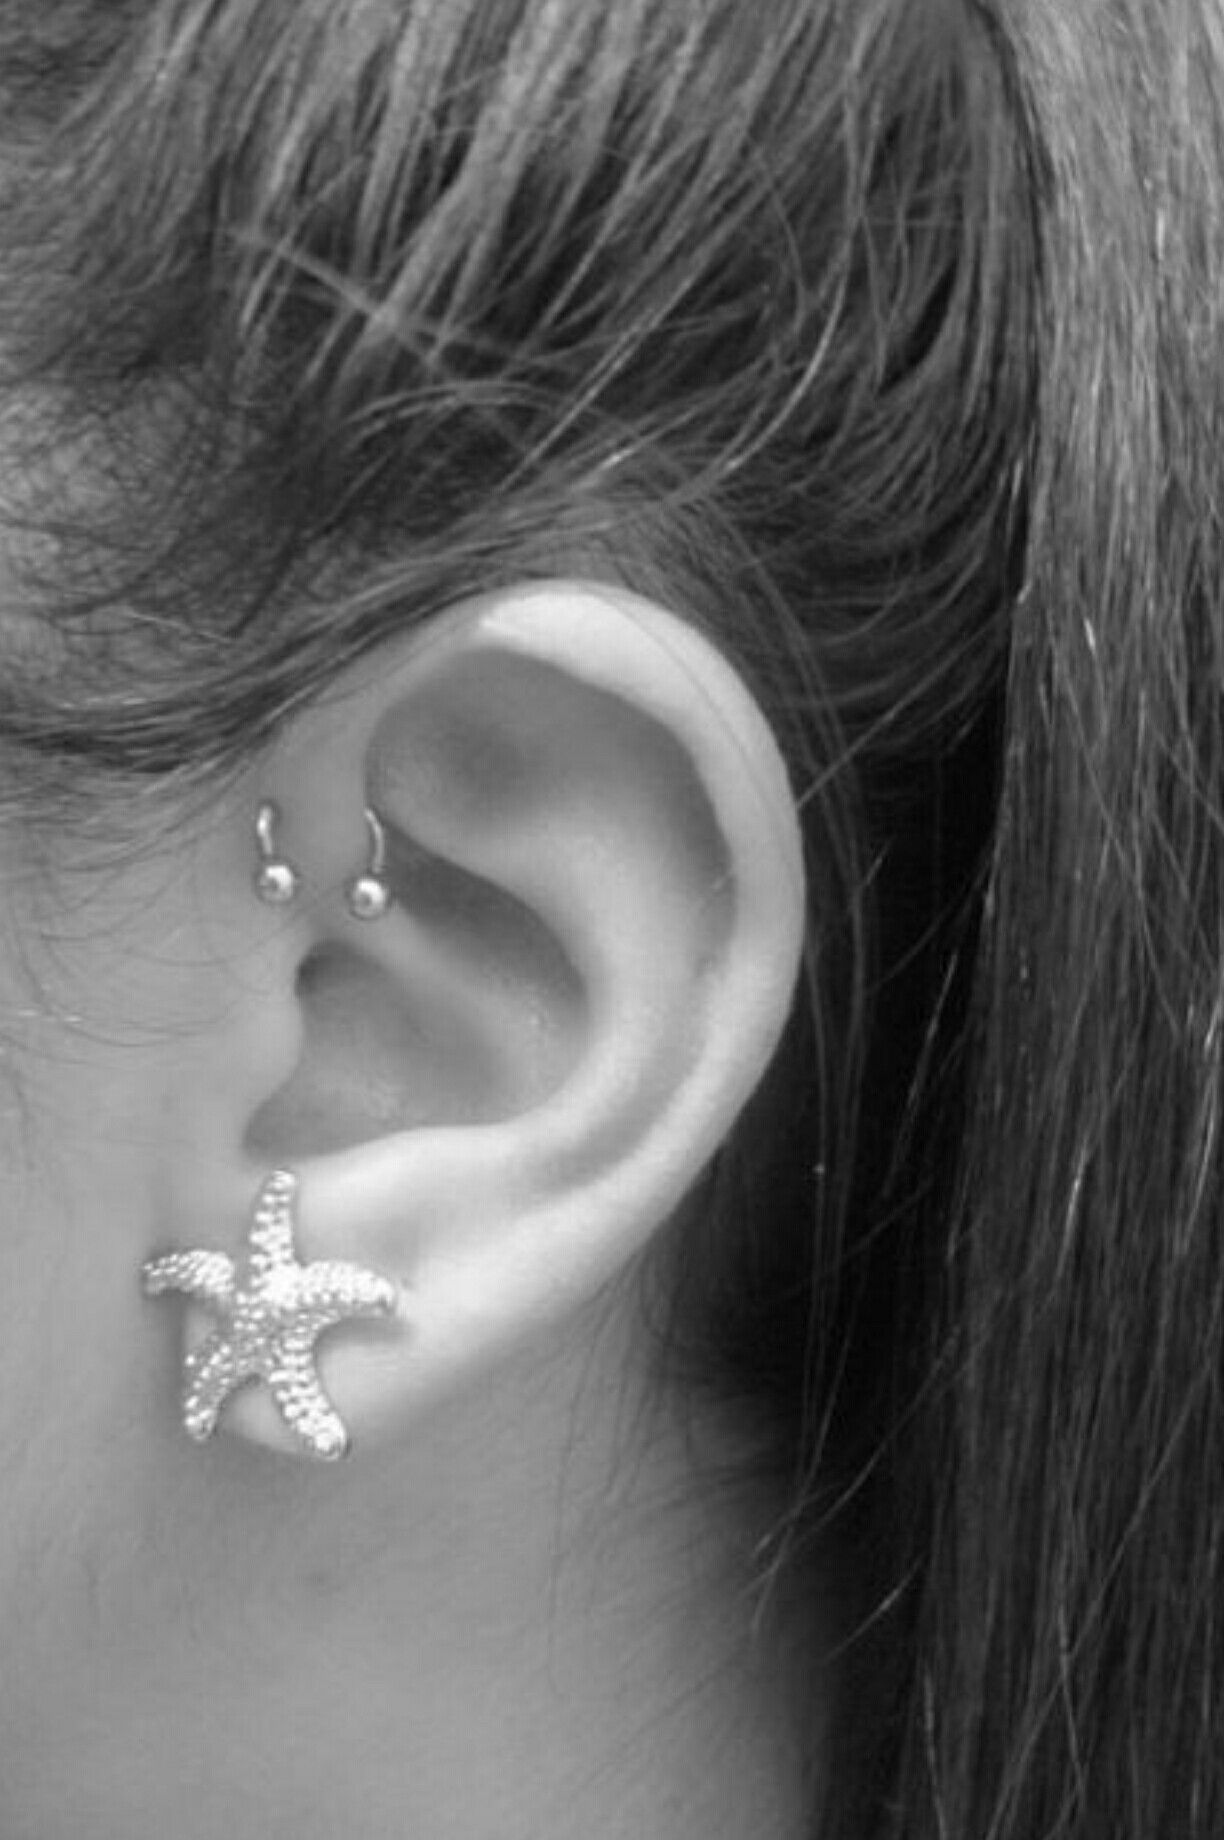 want this earring for my forward helix piercing. Black Bedroom Furniture Sets. Home Design Ideas